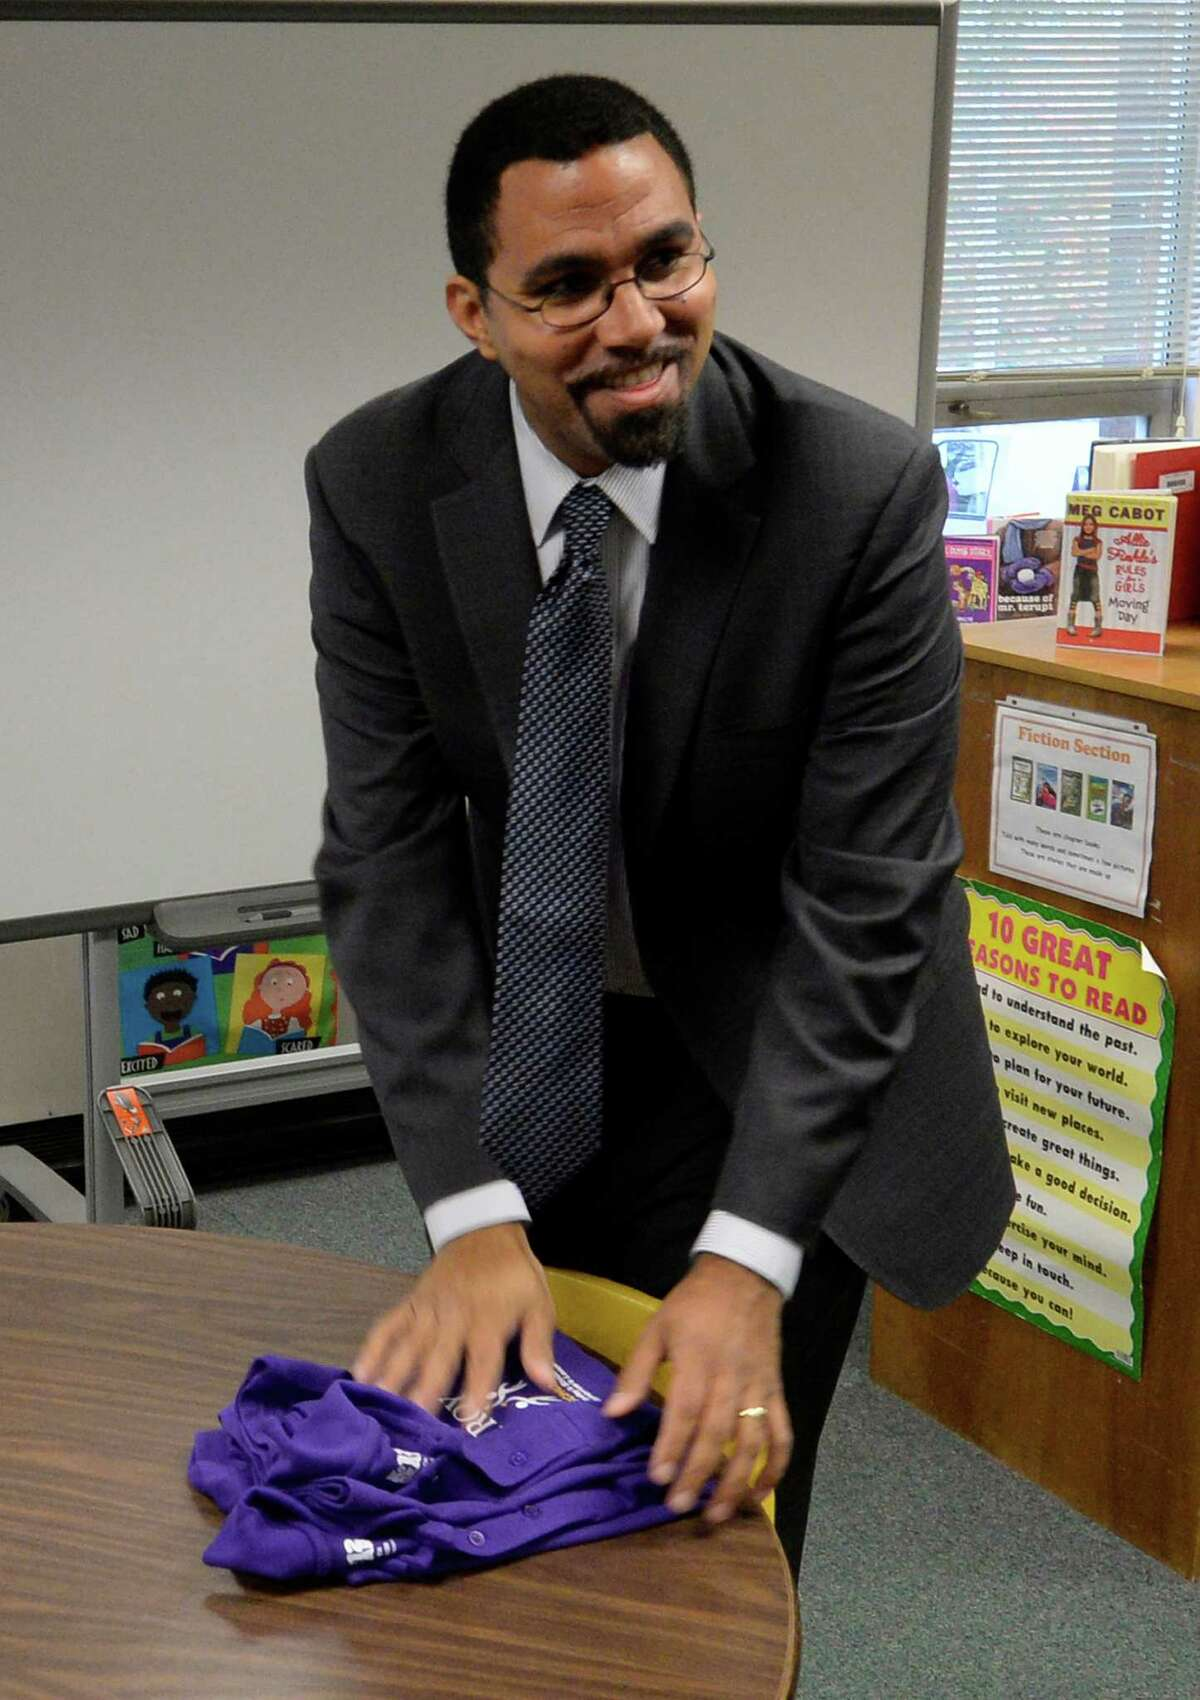 Commissioner of Education John B. King Jr. gathers up some shirts at Public School 2 Tuesday morning, Oct. 15, 2013, in Troy, N.Y. (Skip Dickstein/Times Union)